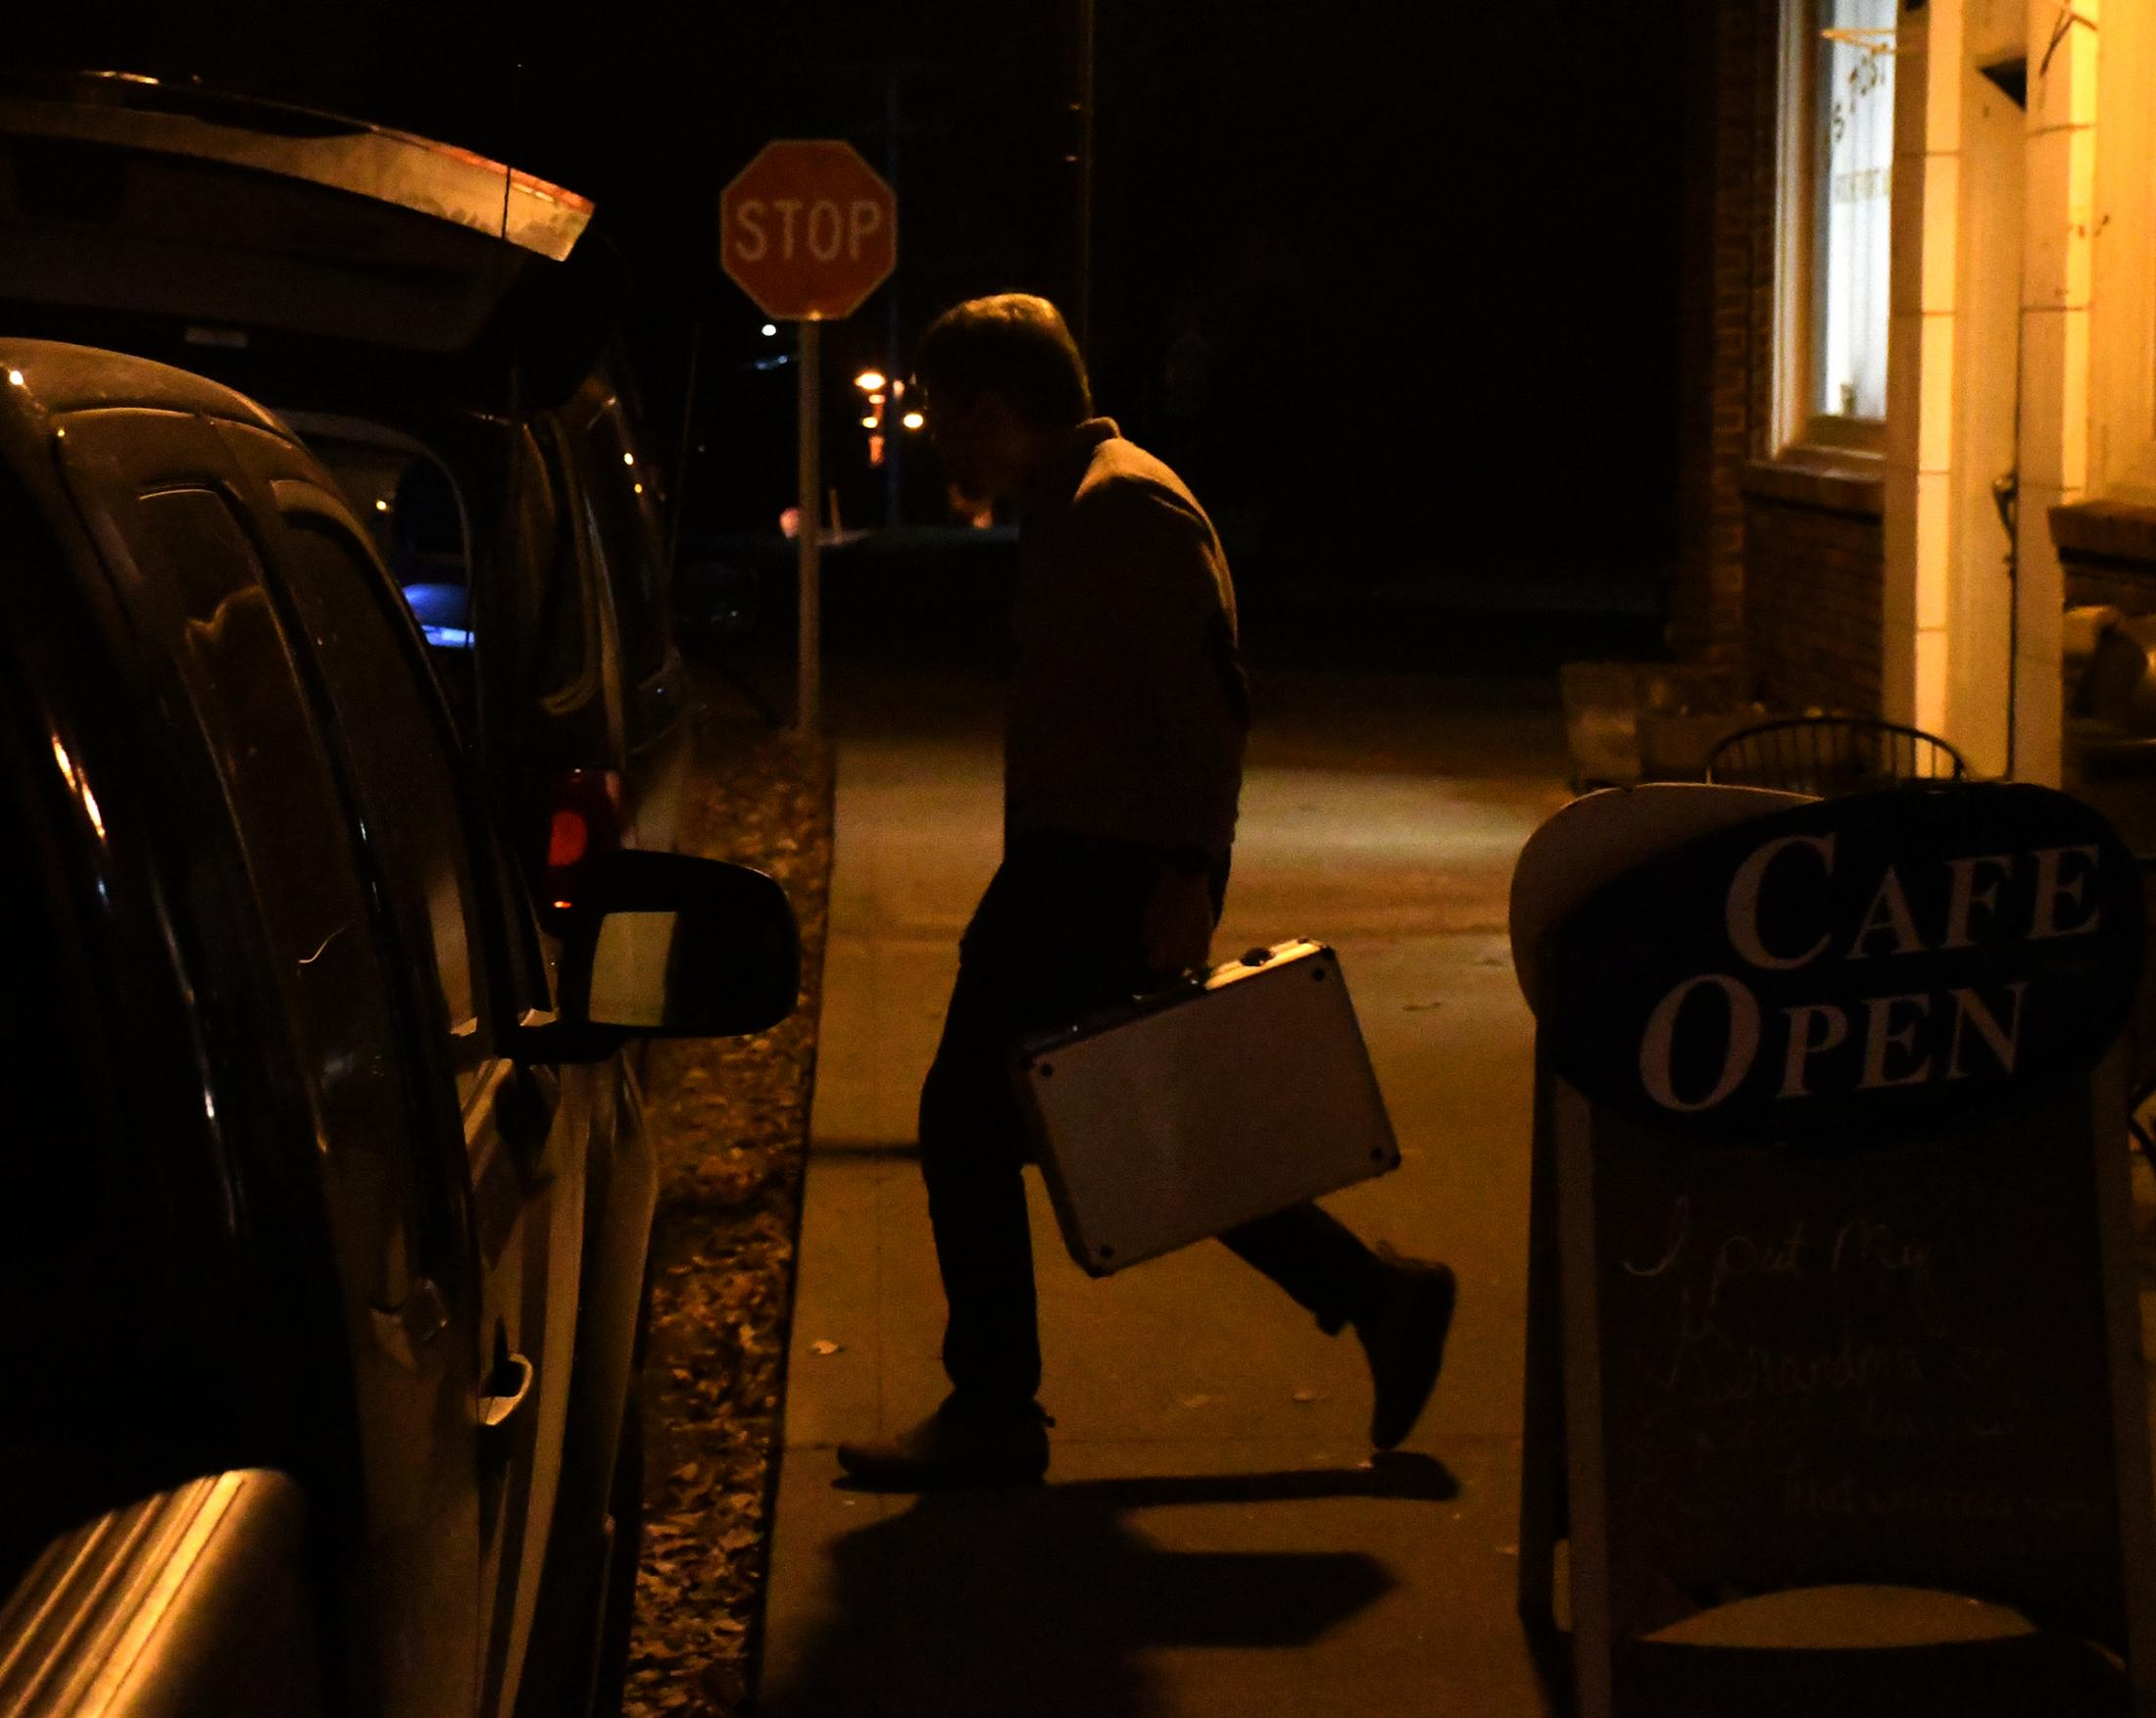 Larsen walks to his car to pack the band instruments and equipment, in front of the Rocheport General Store on Friday, Nov. 15, 2019, in Rocheport, Missouri. This process is really long and normally occurs right after they finish performing, the fact that they don't have an assistant make the job worse.